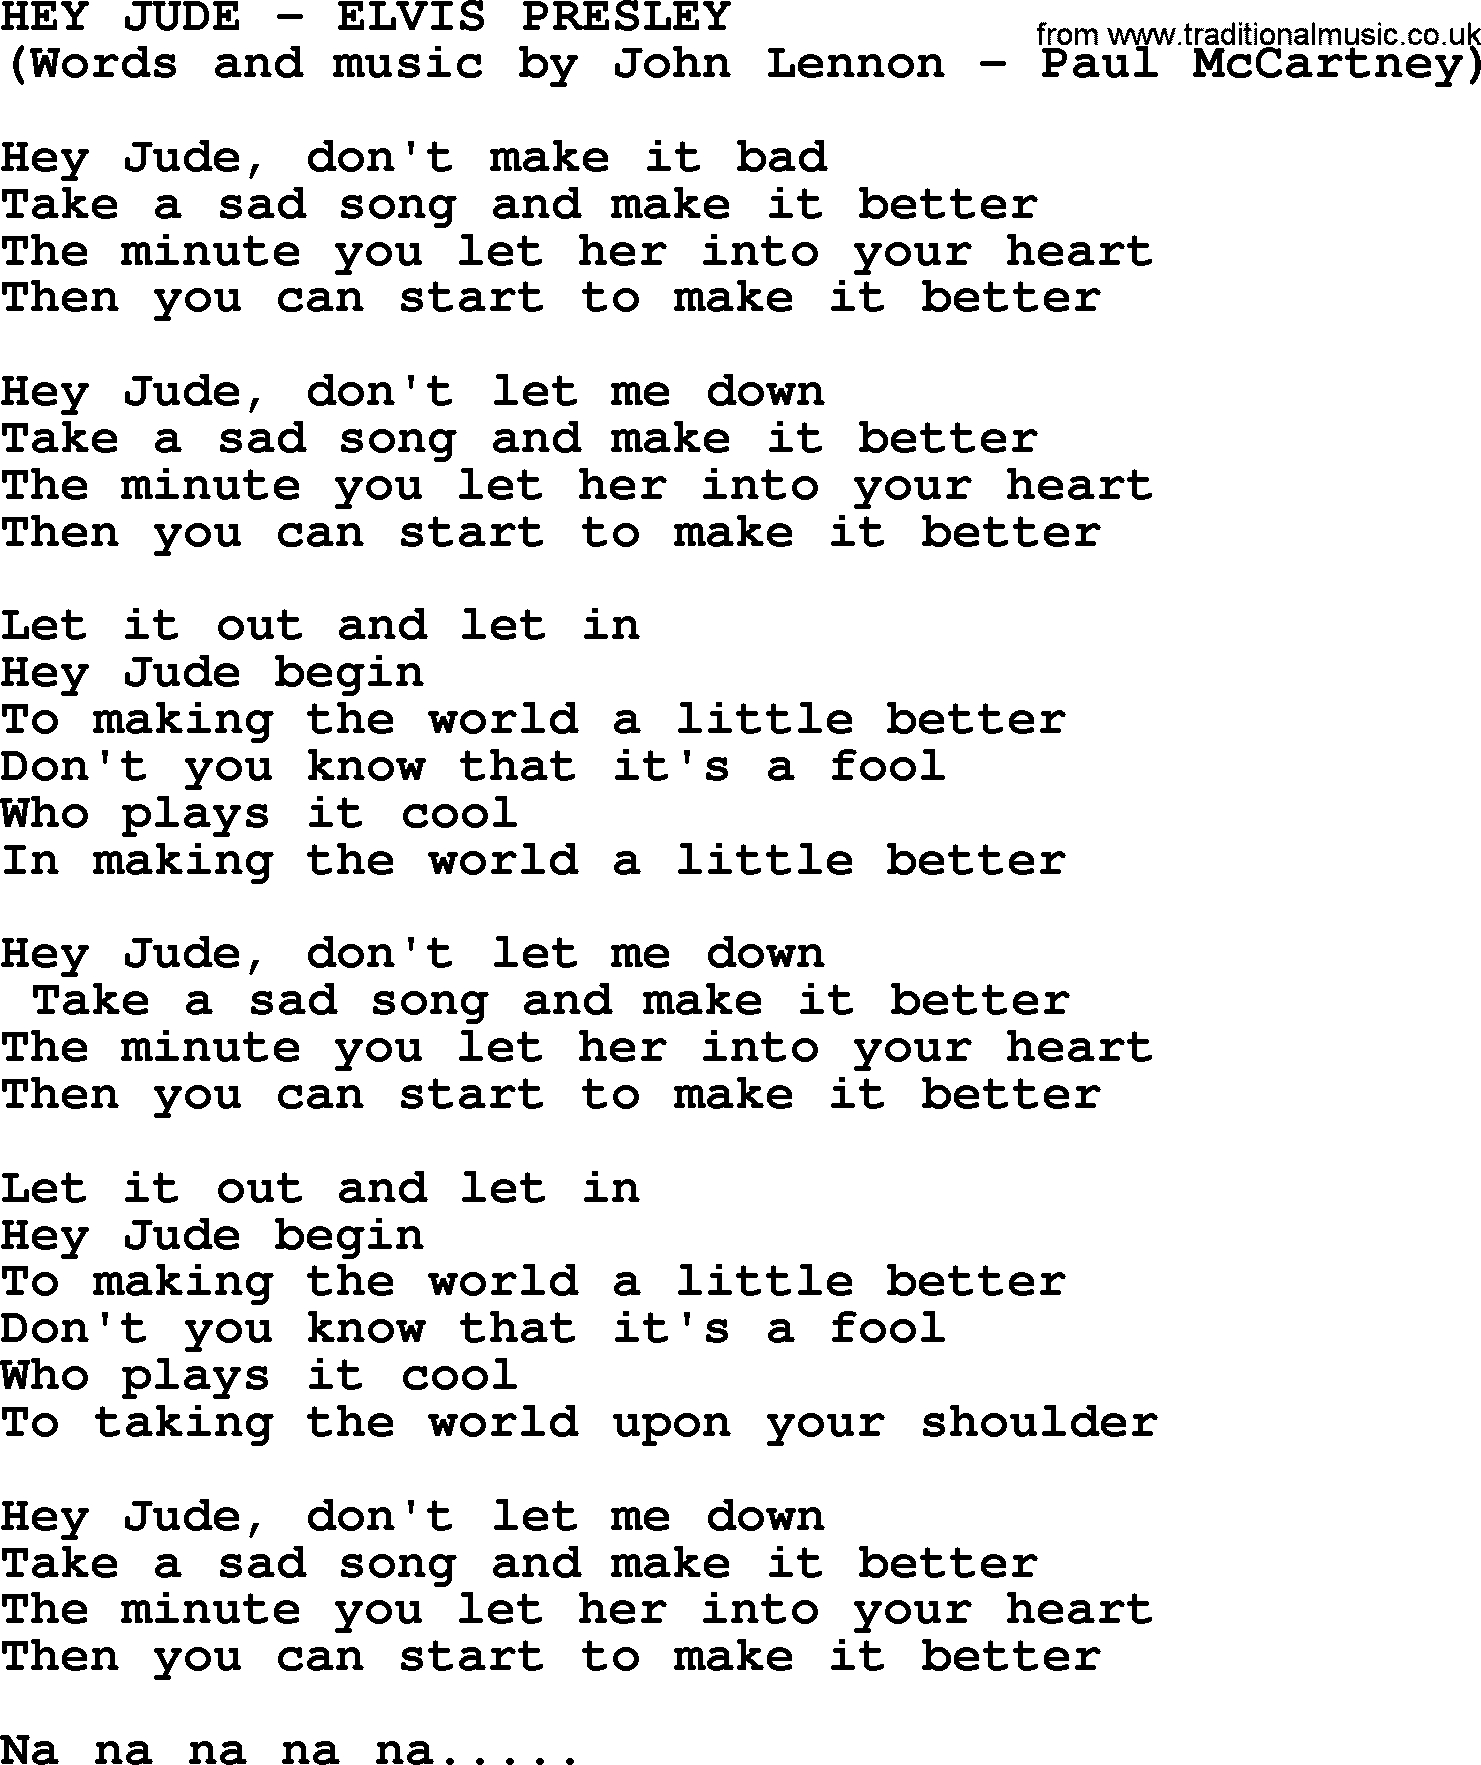 Hey Jude Chords Hey Jude Elvis Presley Lyrics